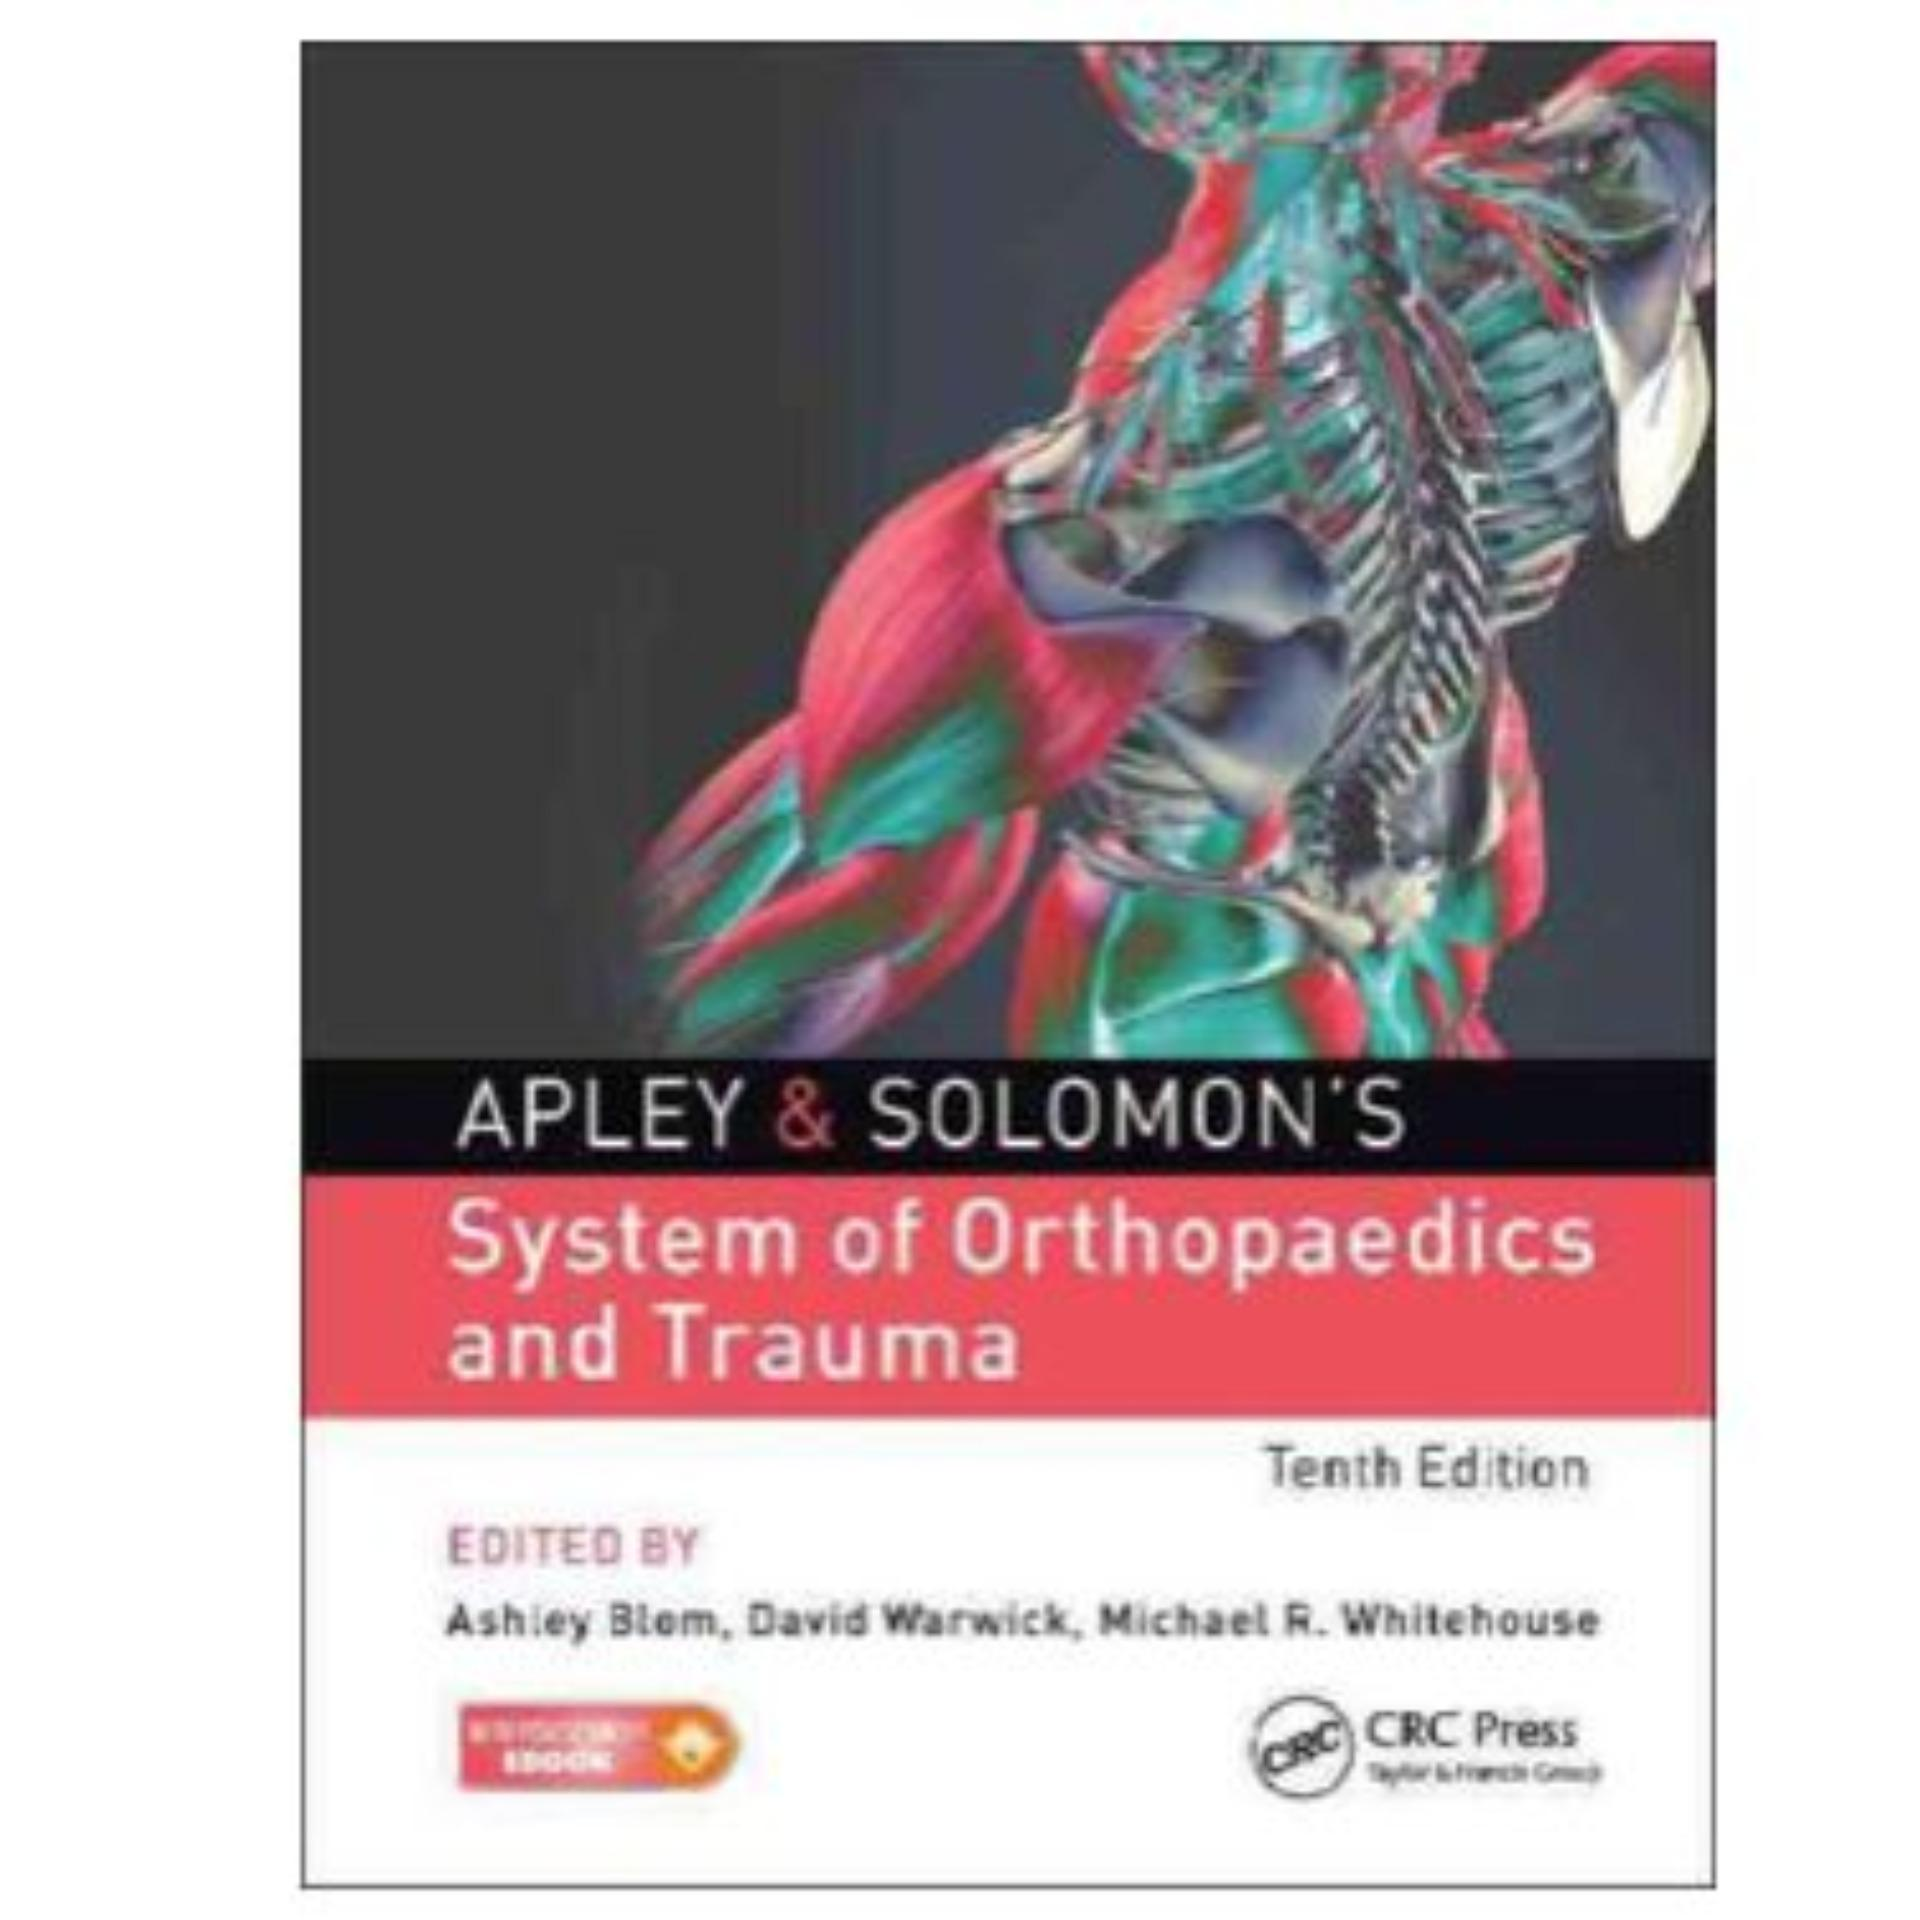 Apley & Solomons System of Orthopaedics and Trauma 10 th edition ebook